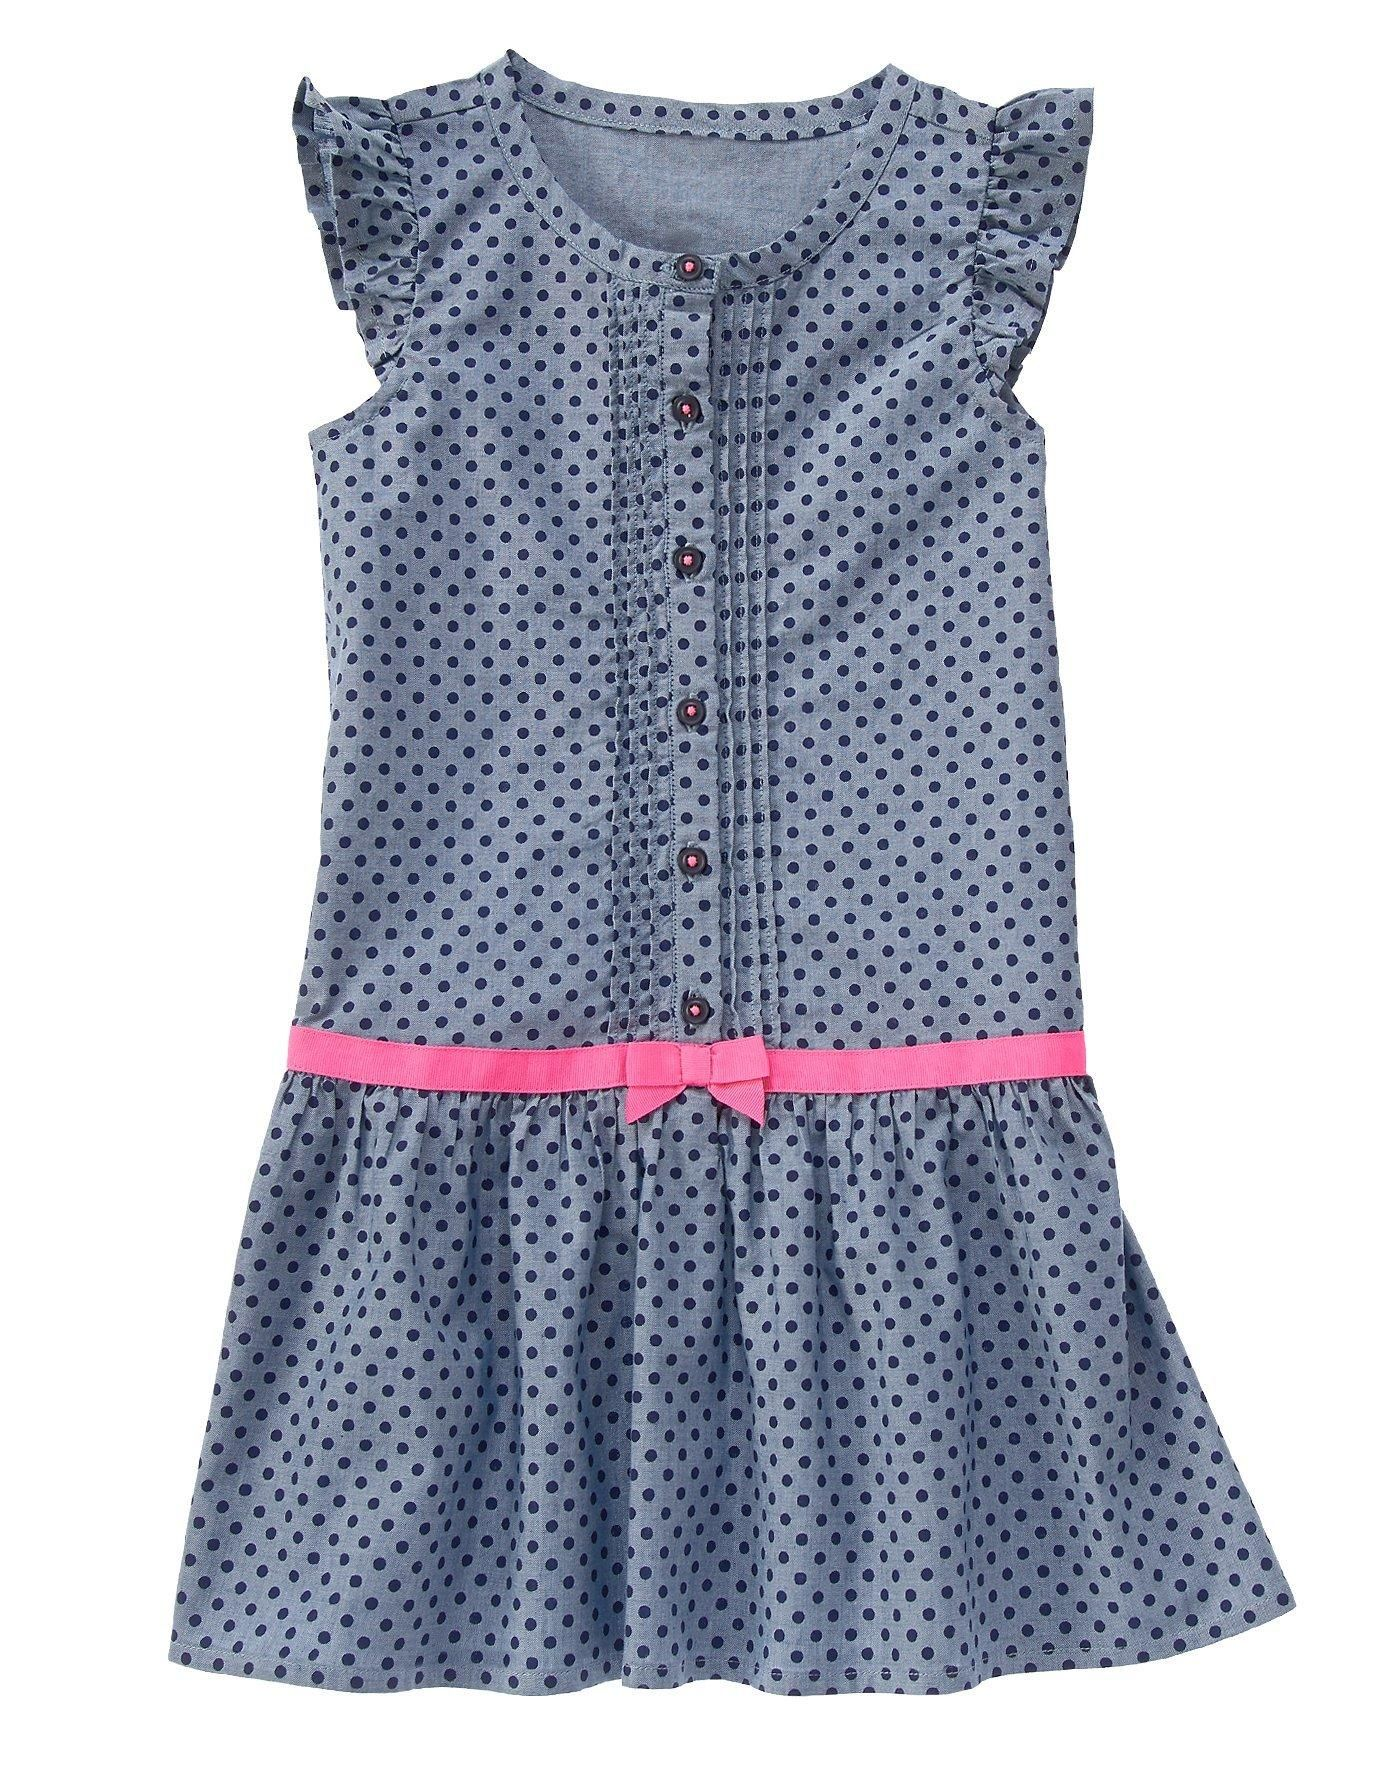 Polka Dot Ribbon Dress | vestidos niñas | Pinterest | Frauenmode ...